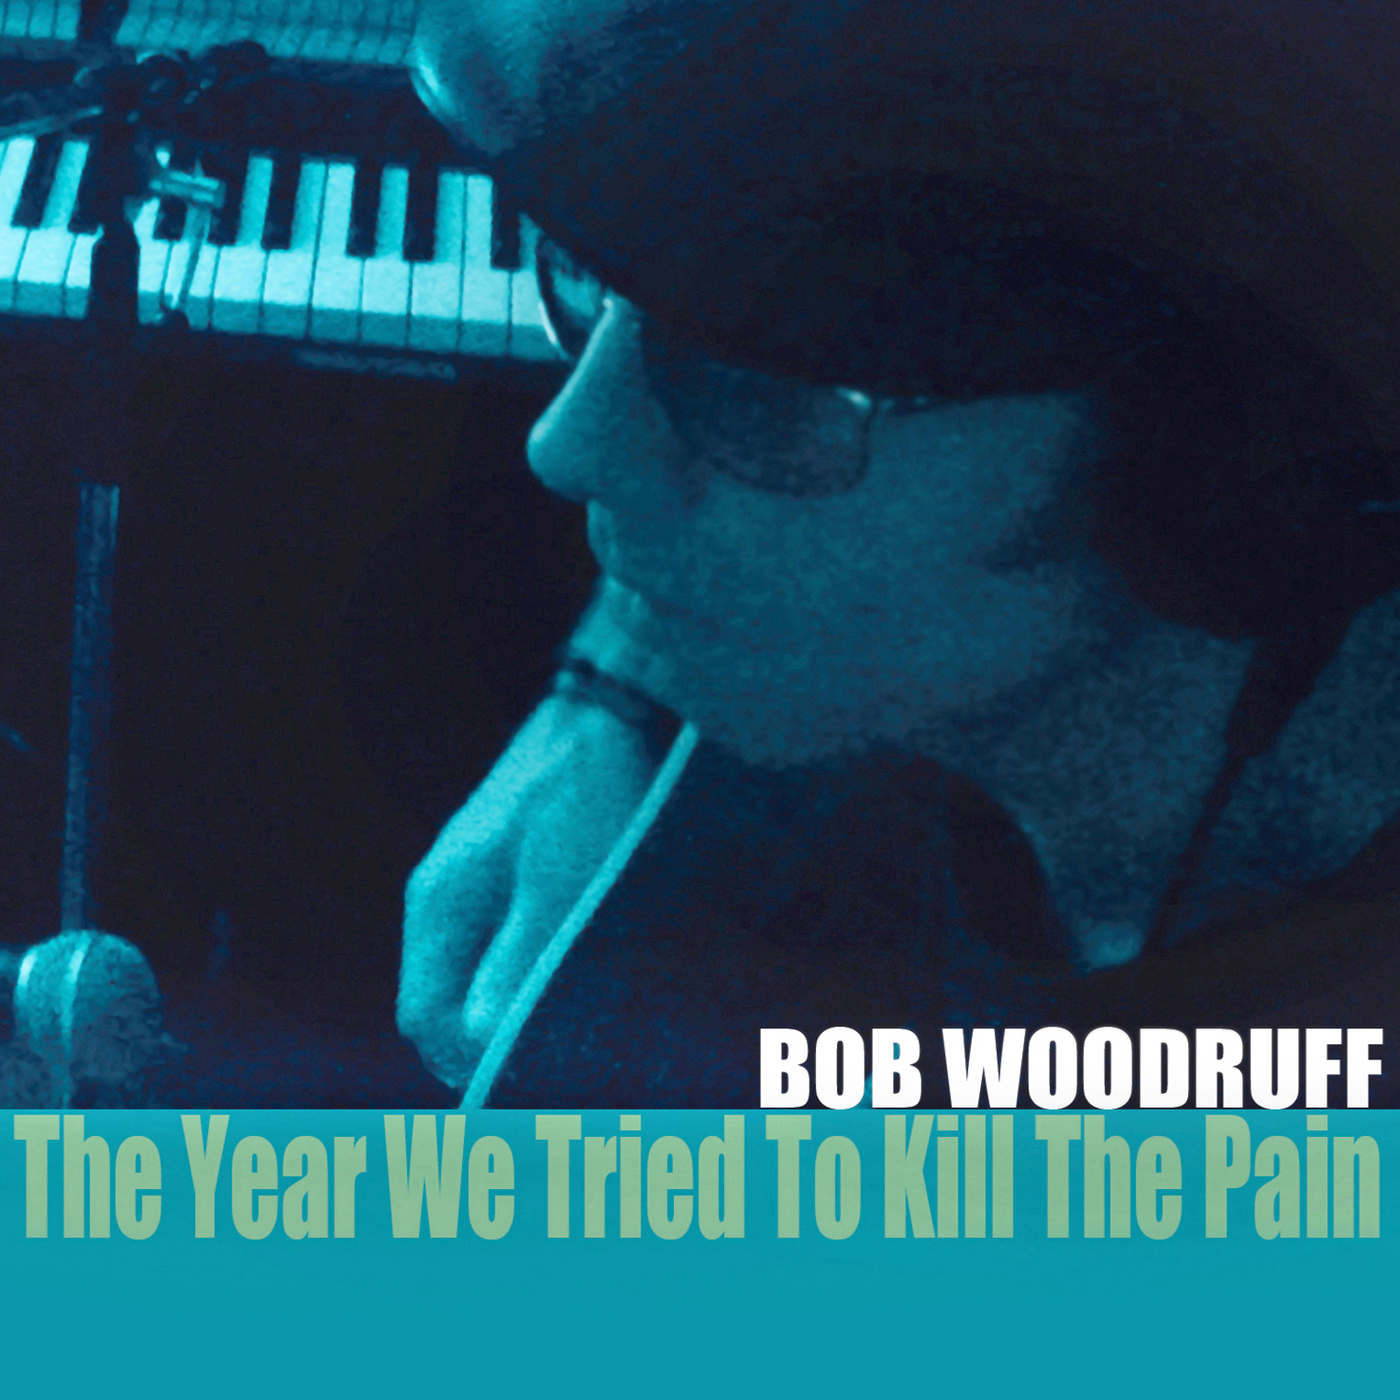 Bob Woodruff  The Year We Tried To Kill The Pain COVER L A C.jpg